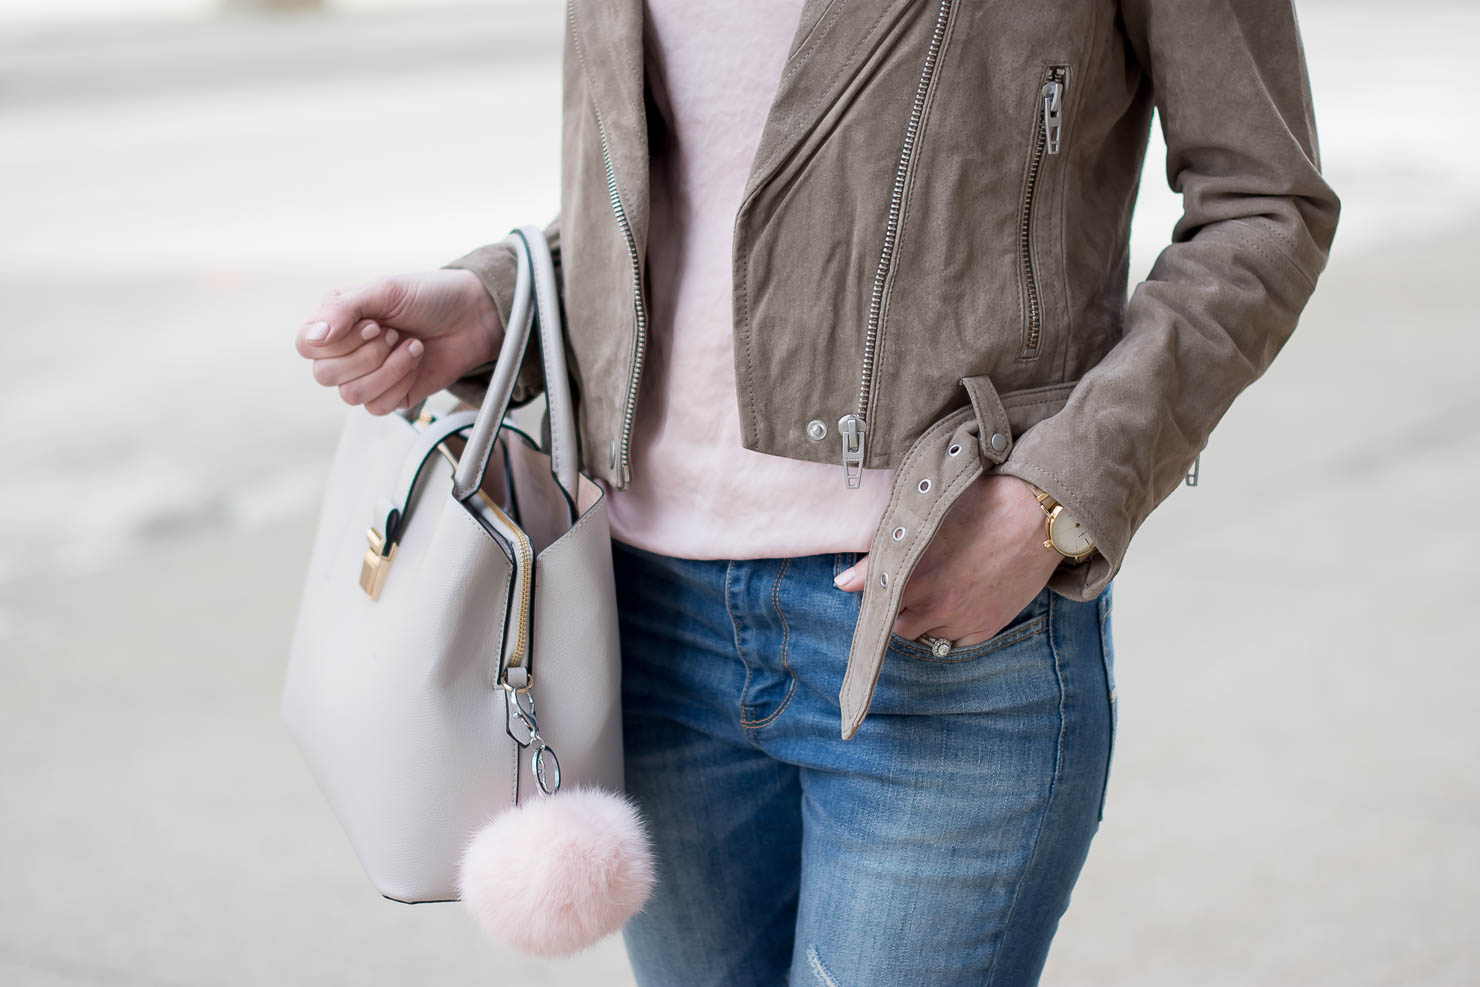 the-best-suede-moto-jacket-spring-neutrals-the-best-distressed-skinny-jeans-celine-dupe-spring-outfit-idea-my-spring-uniform